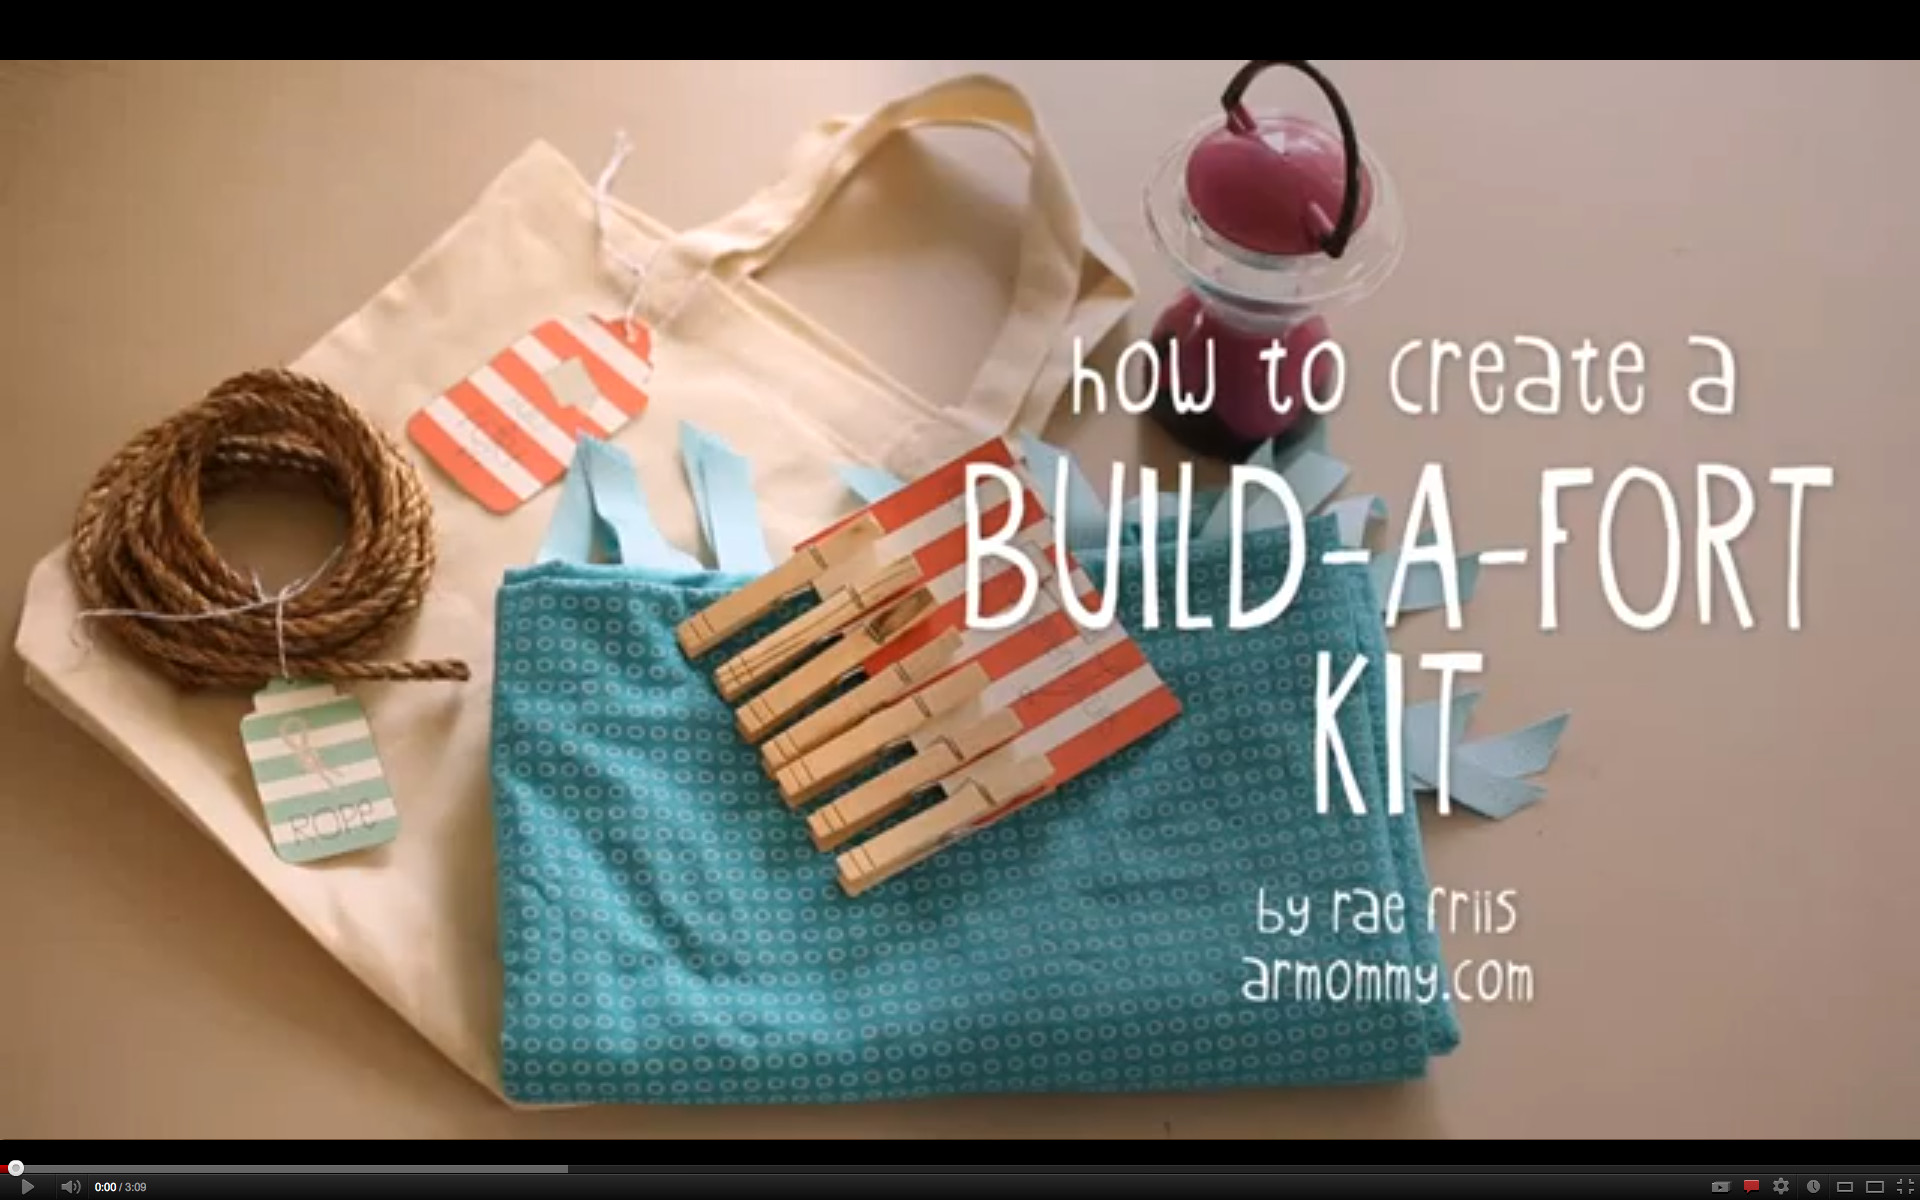 Best ideas about DIY Fort Kit . Save or Pin build a fort kit DIY update Now.